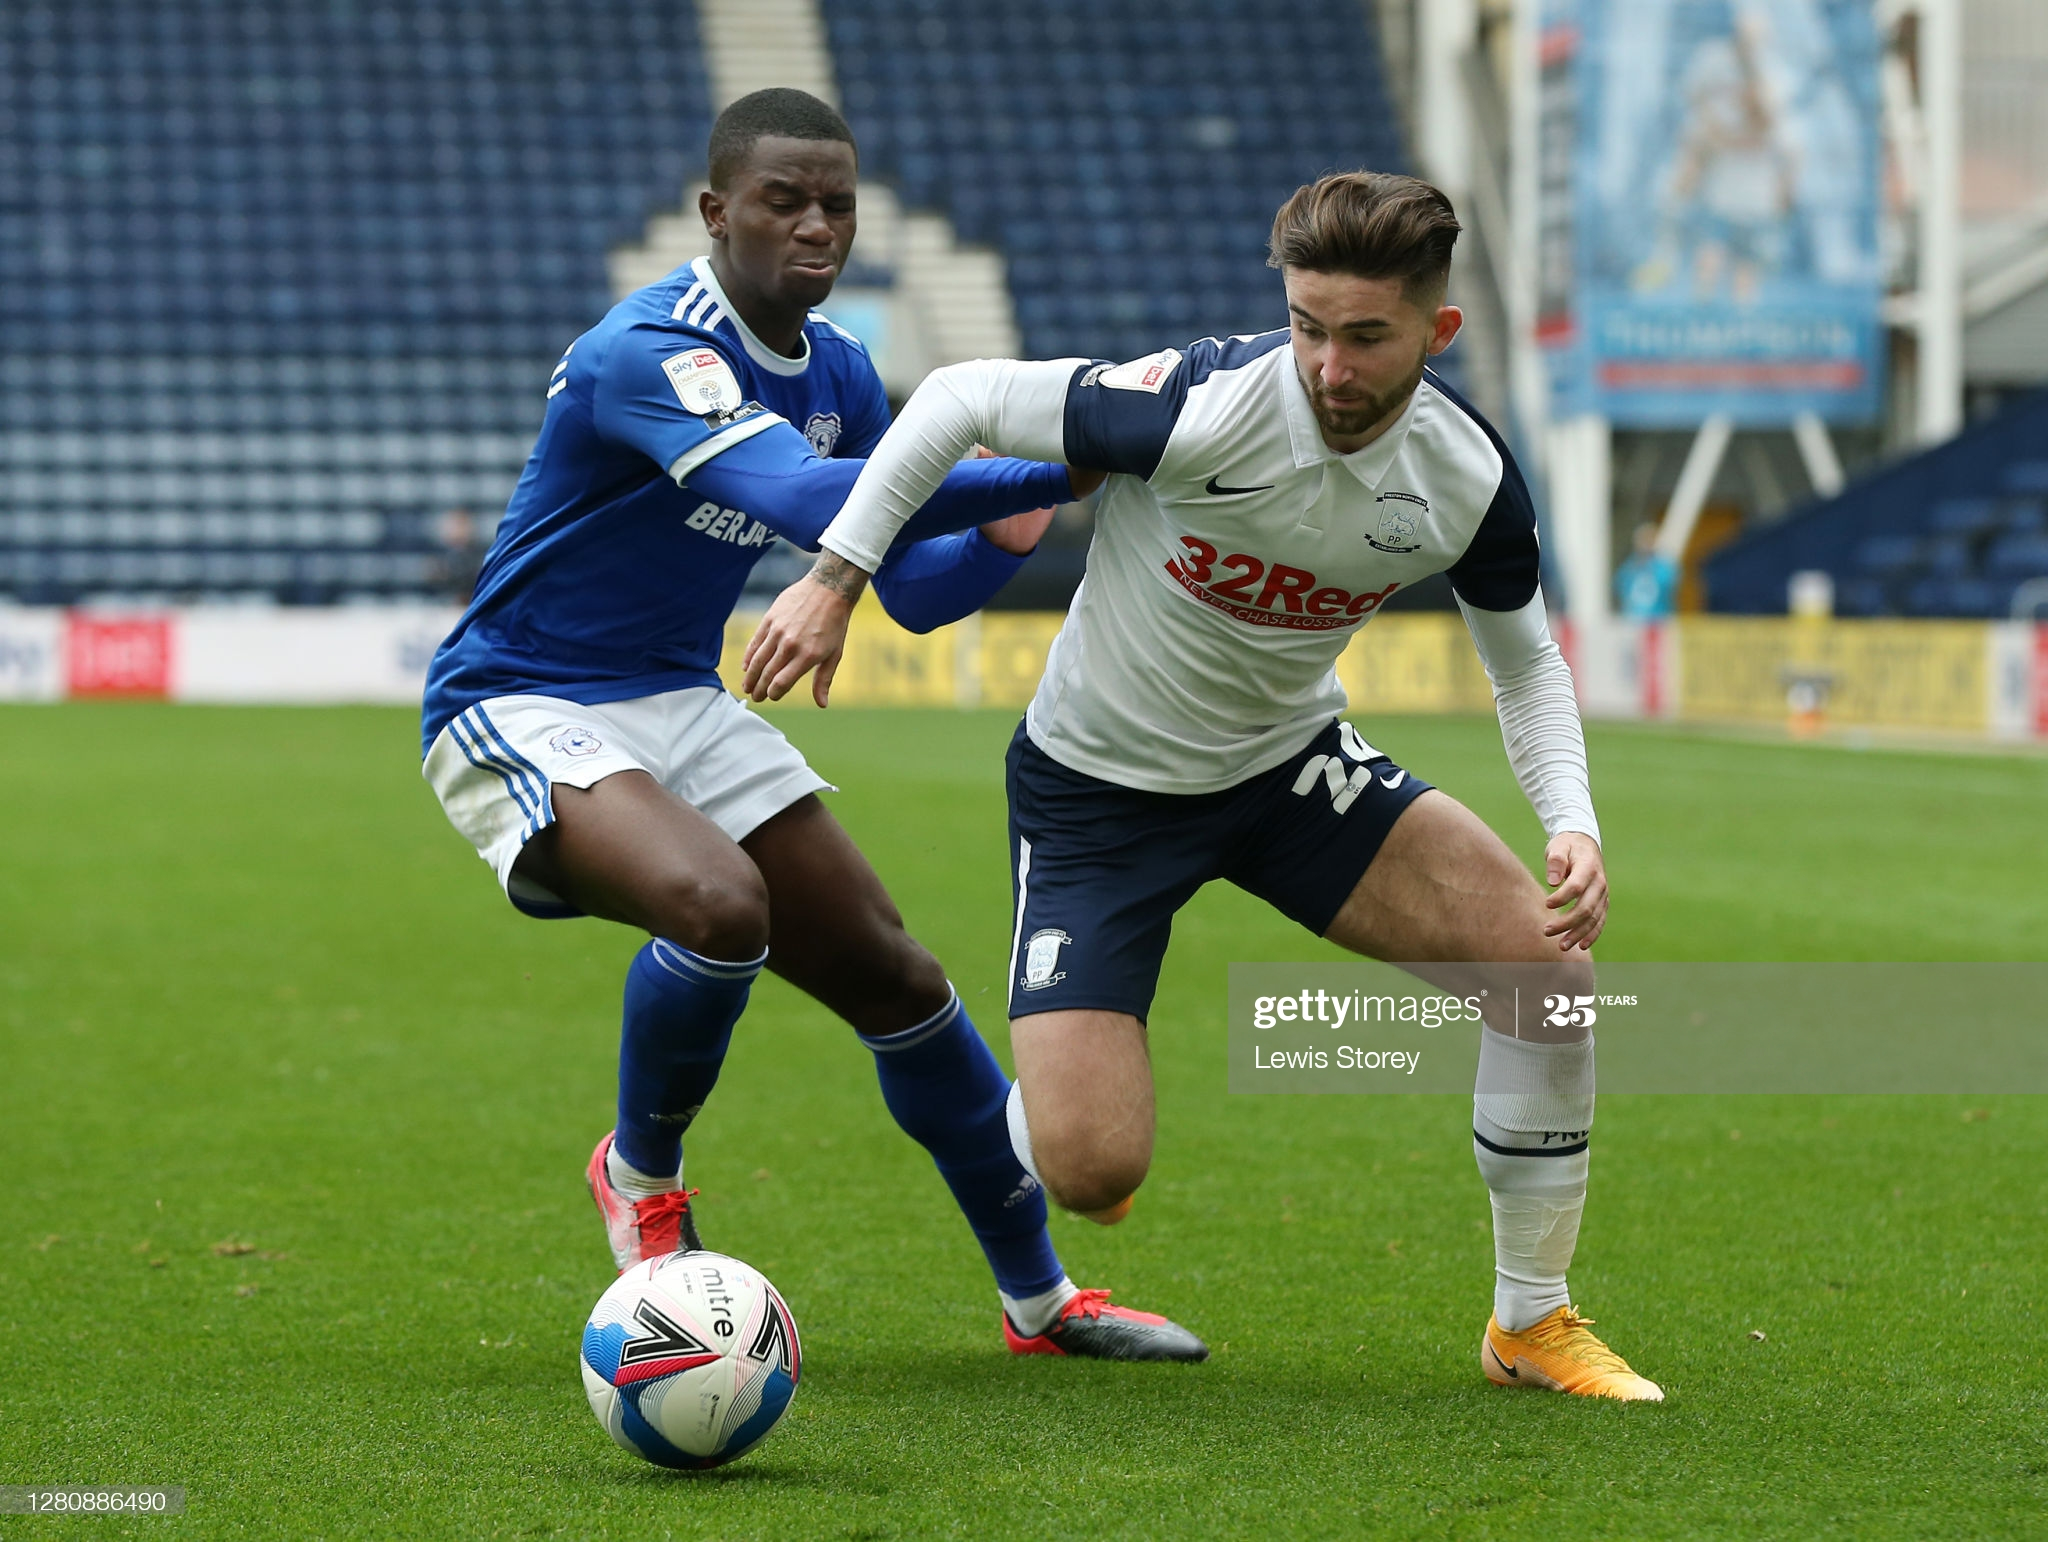 Preston North End vs Birmingham City